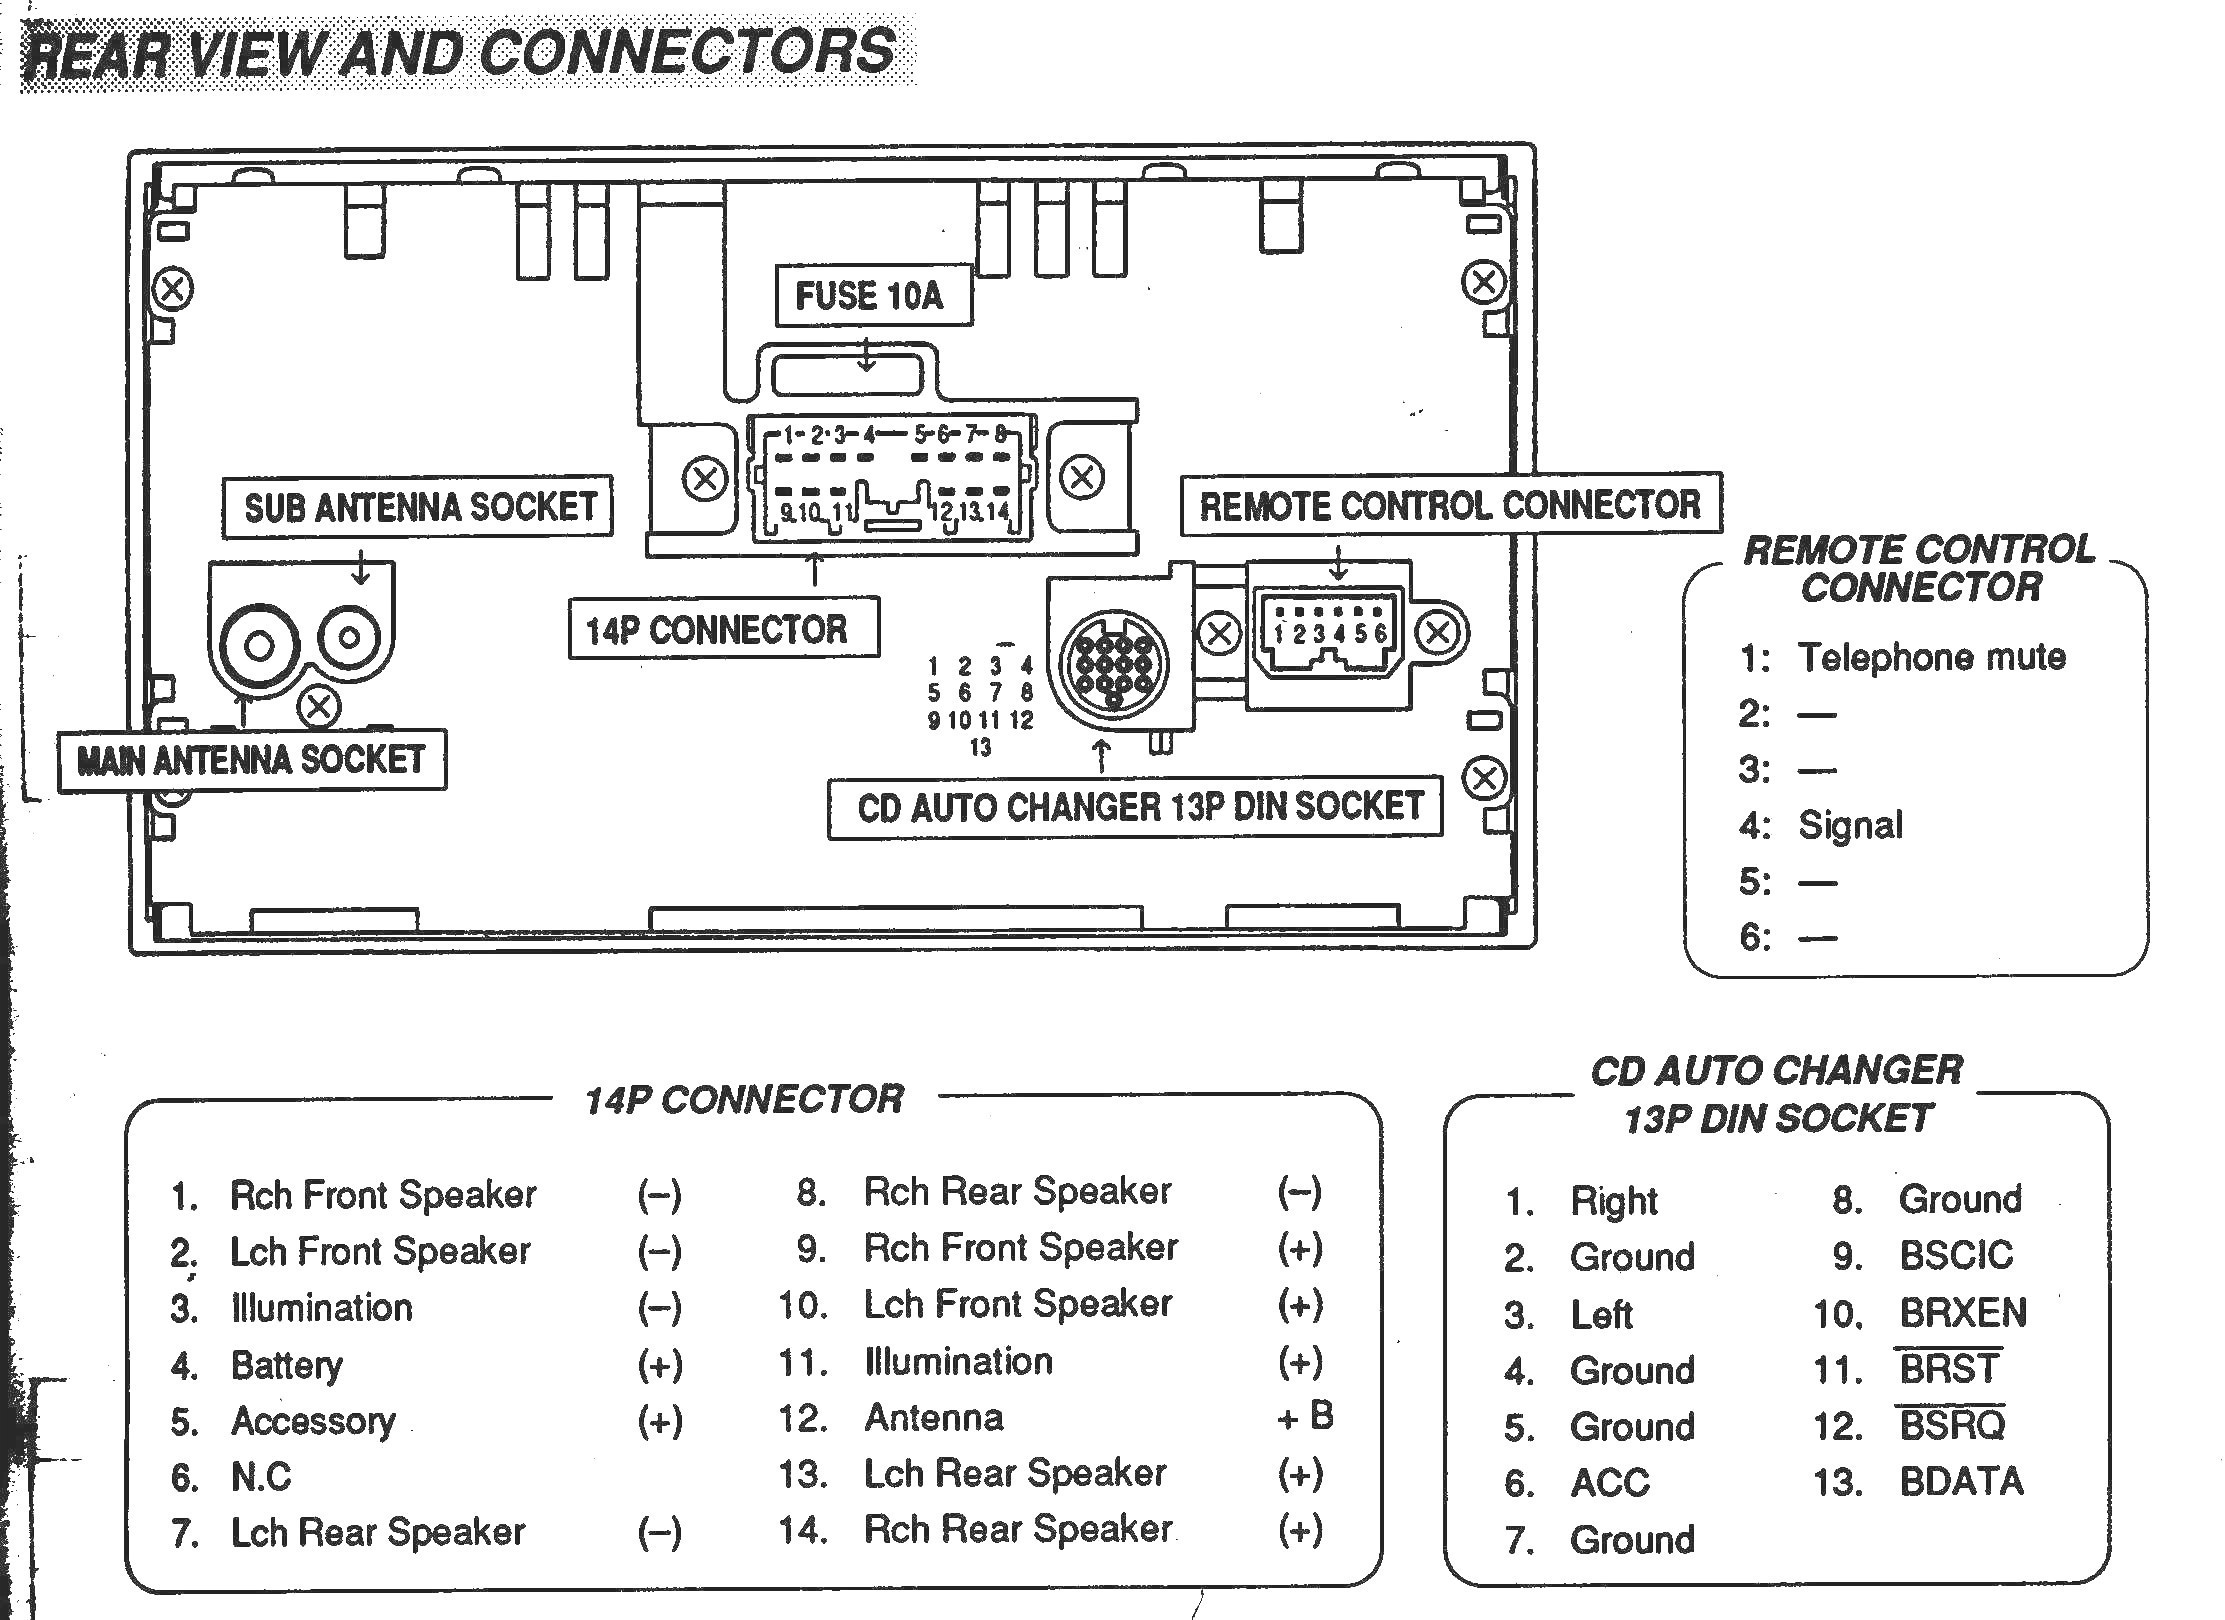 1995 Honda Civic Stereo Wiring Lighting In Home Wiring Diagram Parallel For Wiring Diagram Schematics